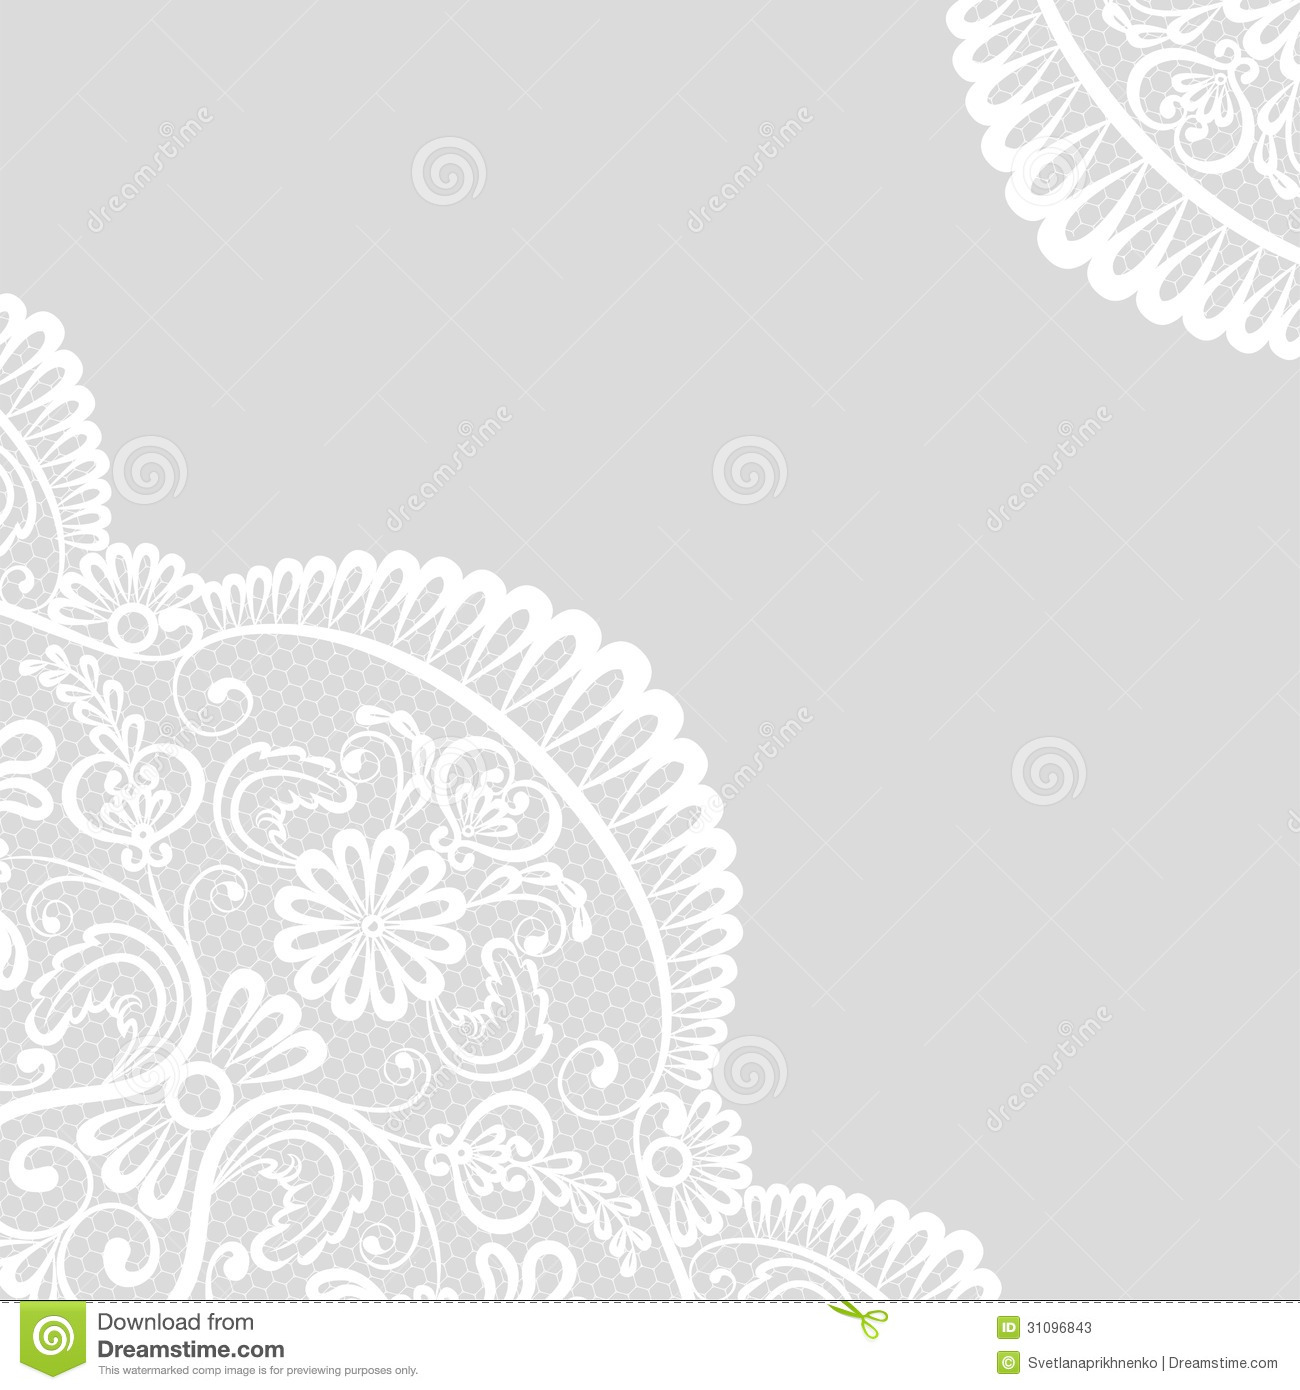 Lace Border Stock Photos   Image  31096843